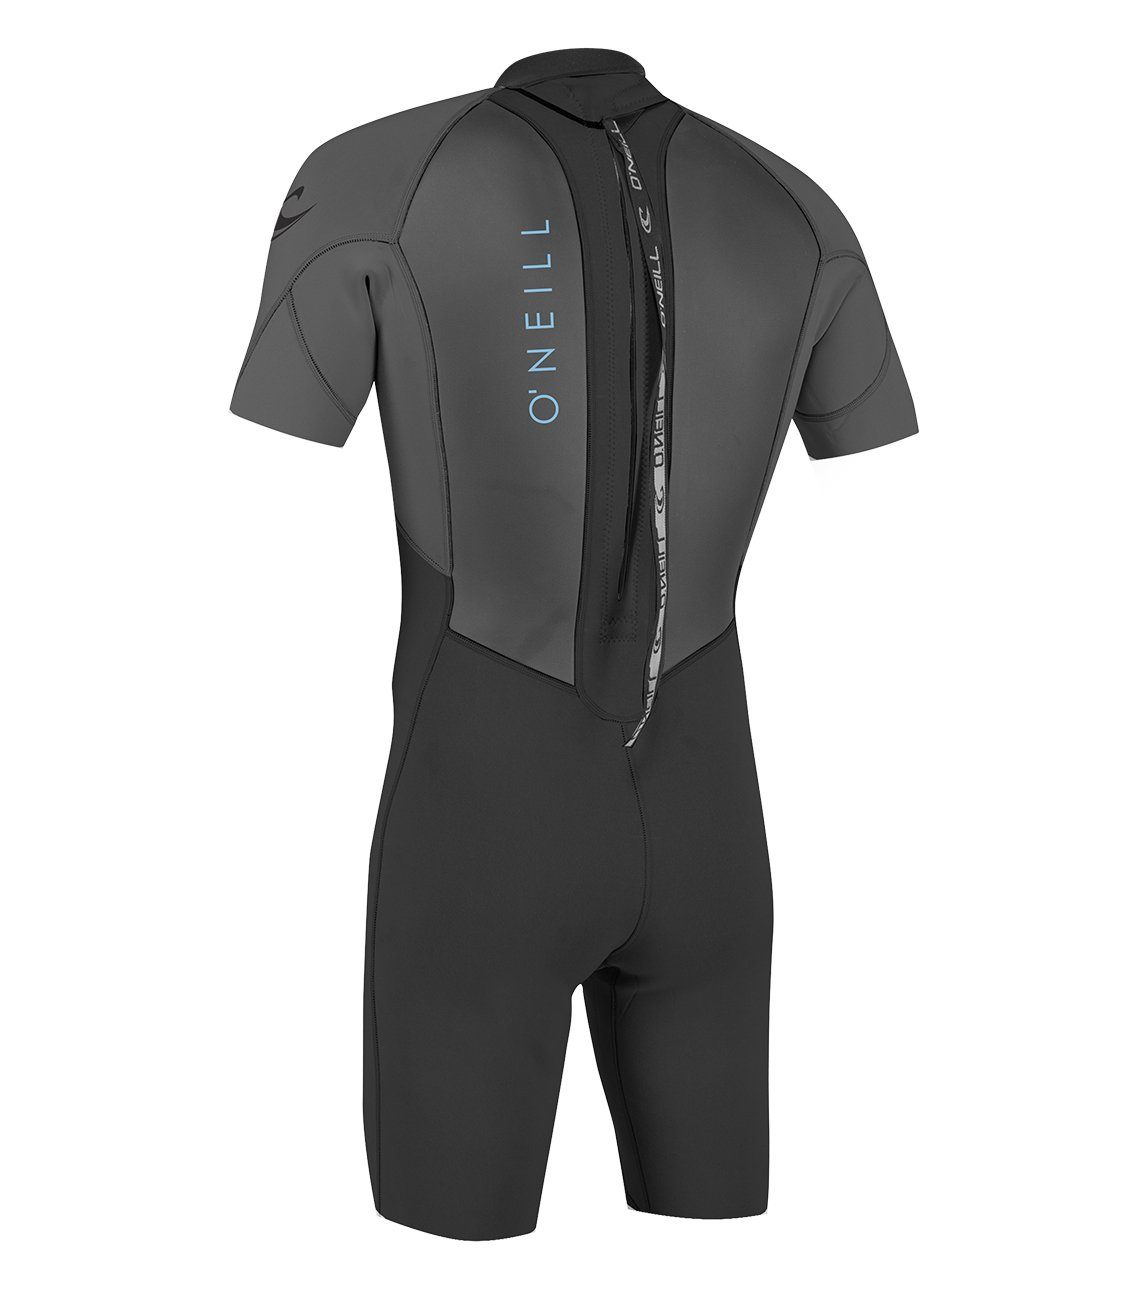 O'Neill Youth Reactor-2 2mm Back Zip Short Sleeve Spring Wetsuit, Black/Graphite, 6 by O'Neill Wetsuits (Image #2)